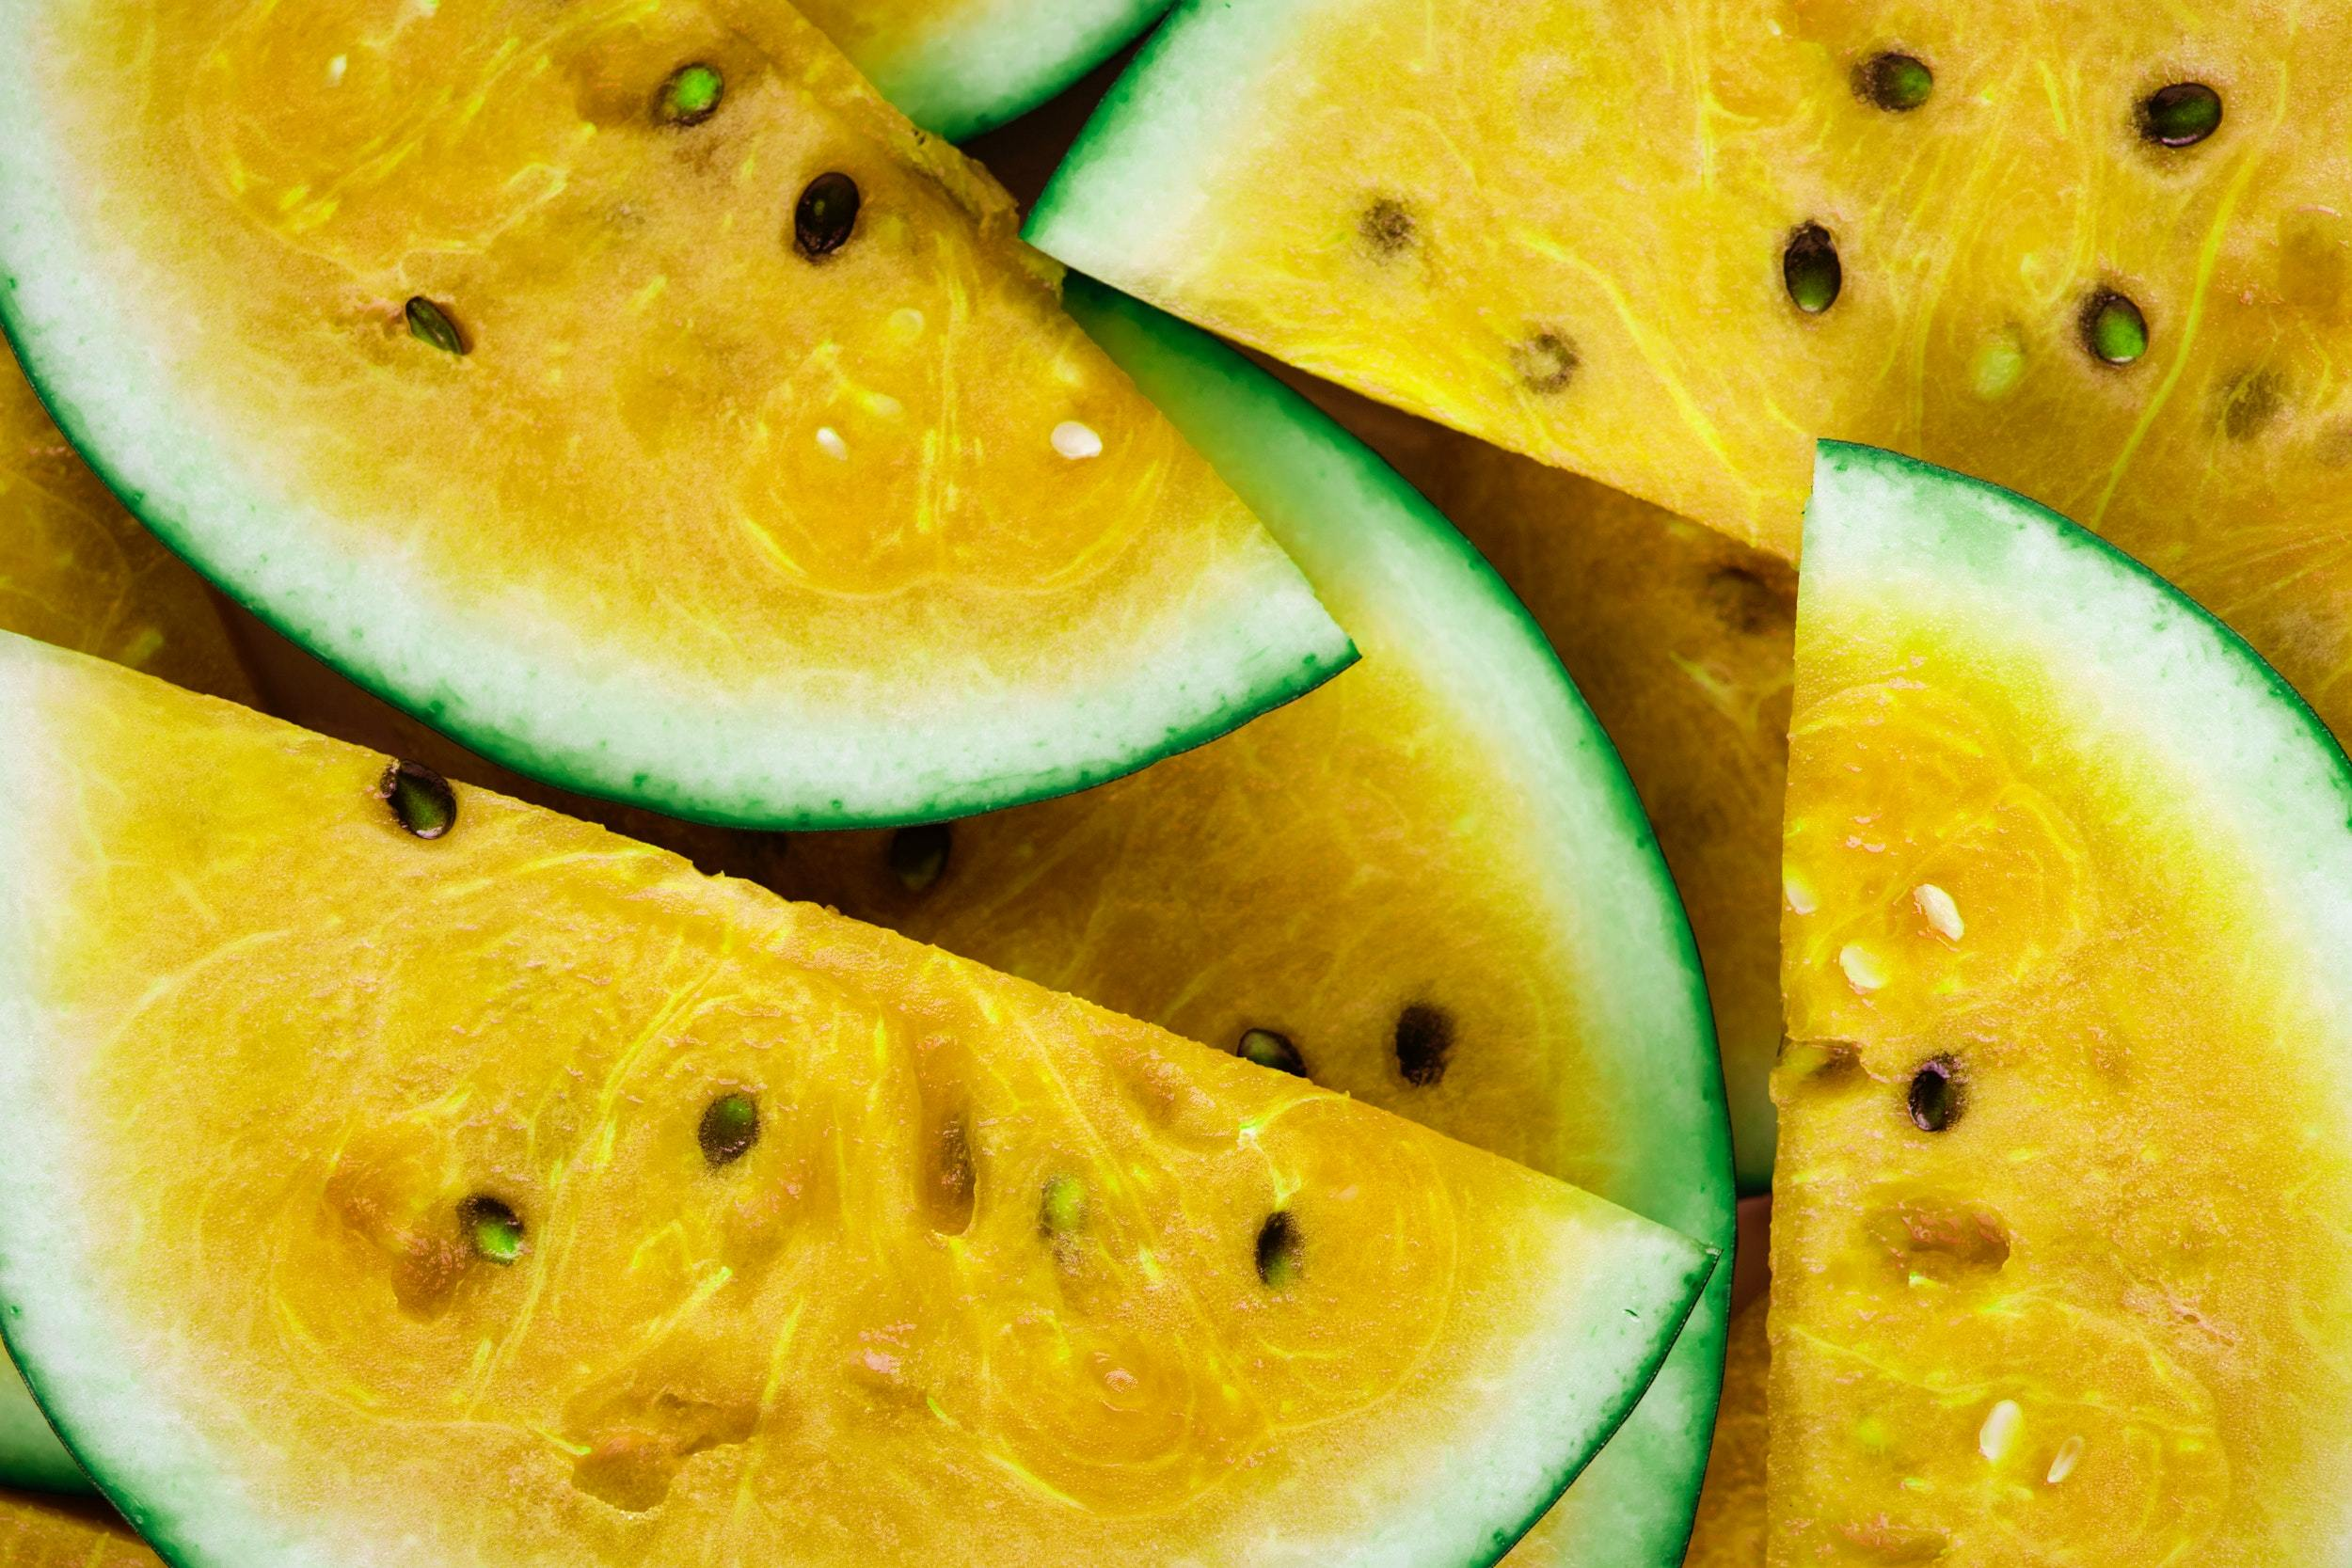 Everything you need to know about Kalahari Melon Seed Oil